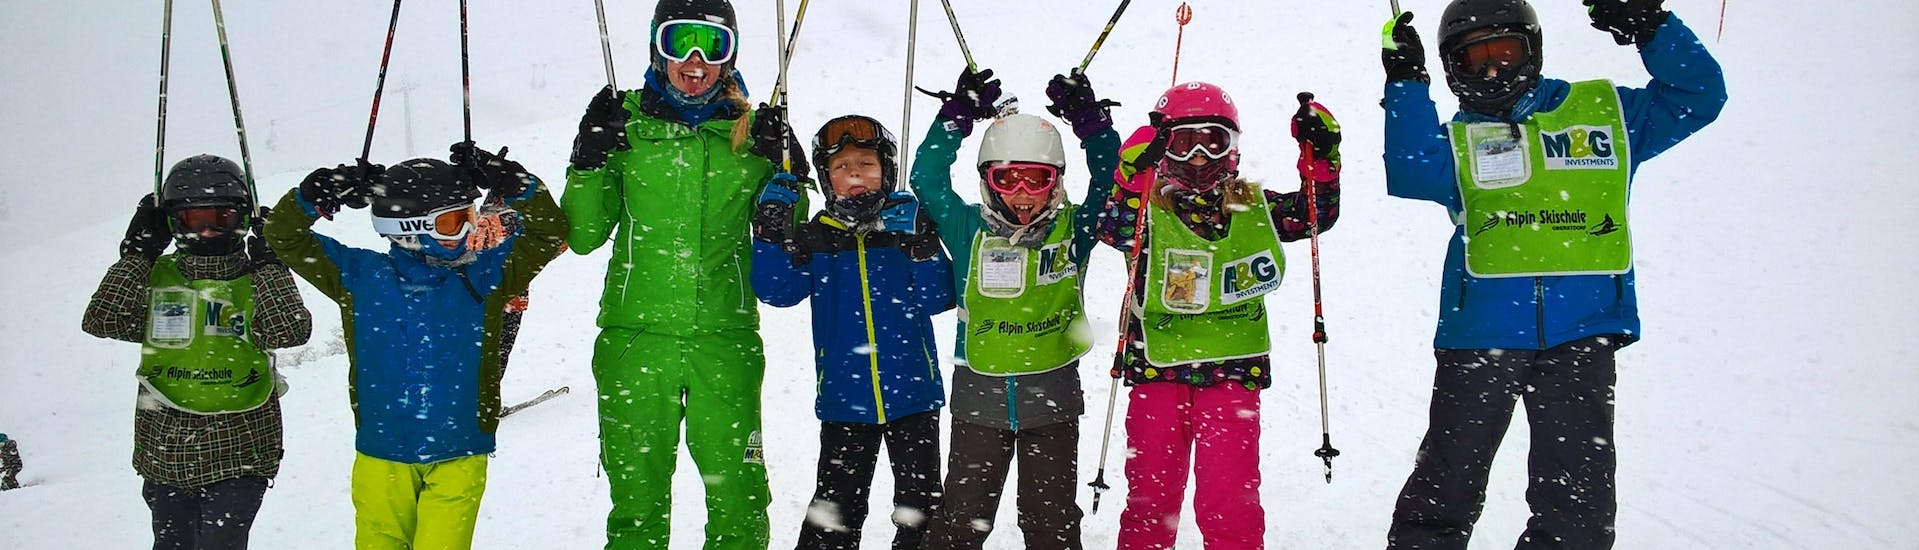 A group of happy children during the Kids Ski Lessons (9-16 years) - Advanced with their ski instructor from the ski school Alpin Skischule Oberstdorf.